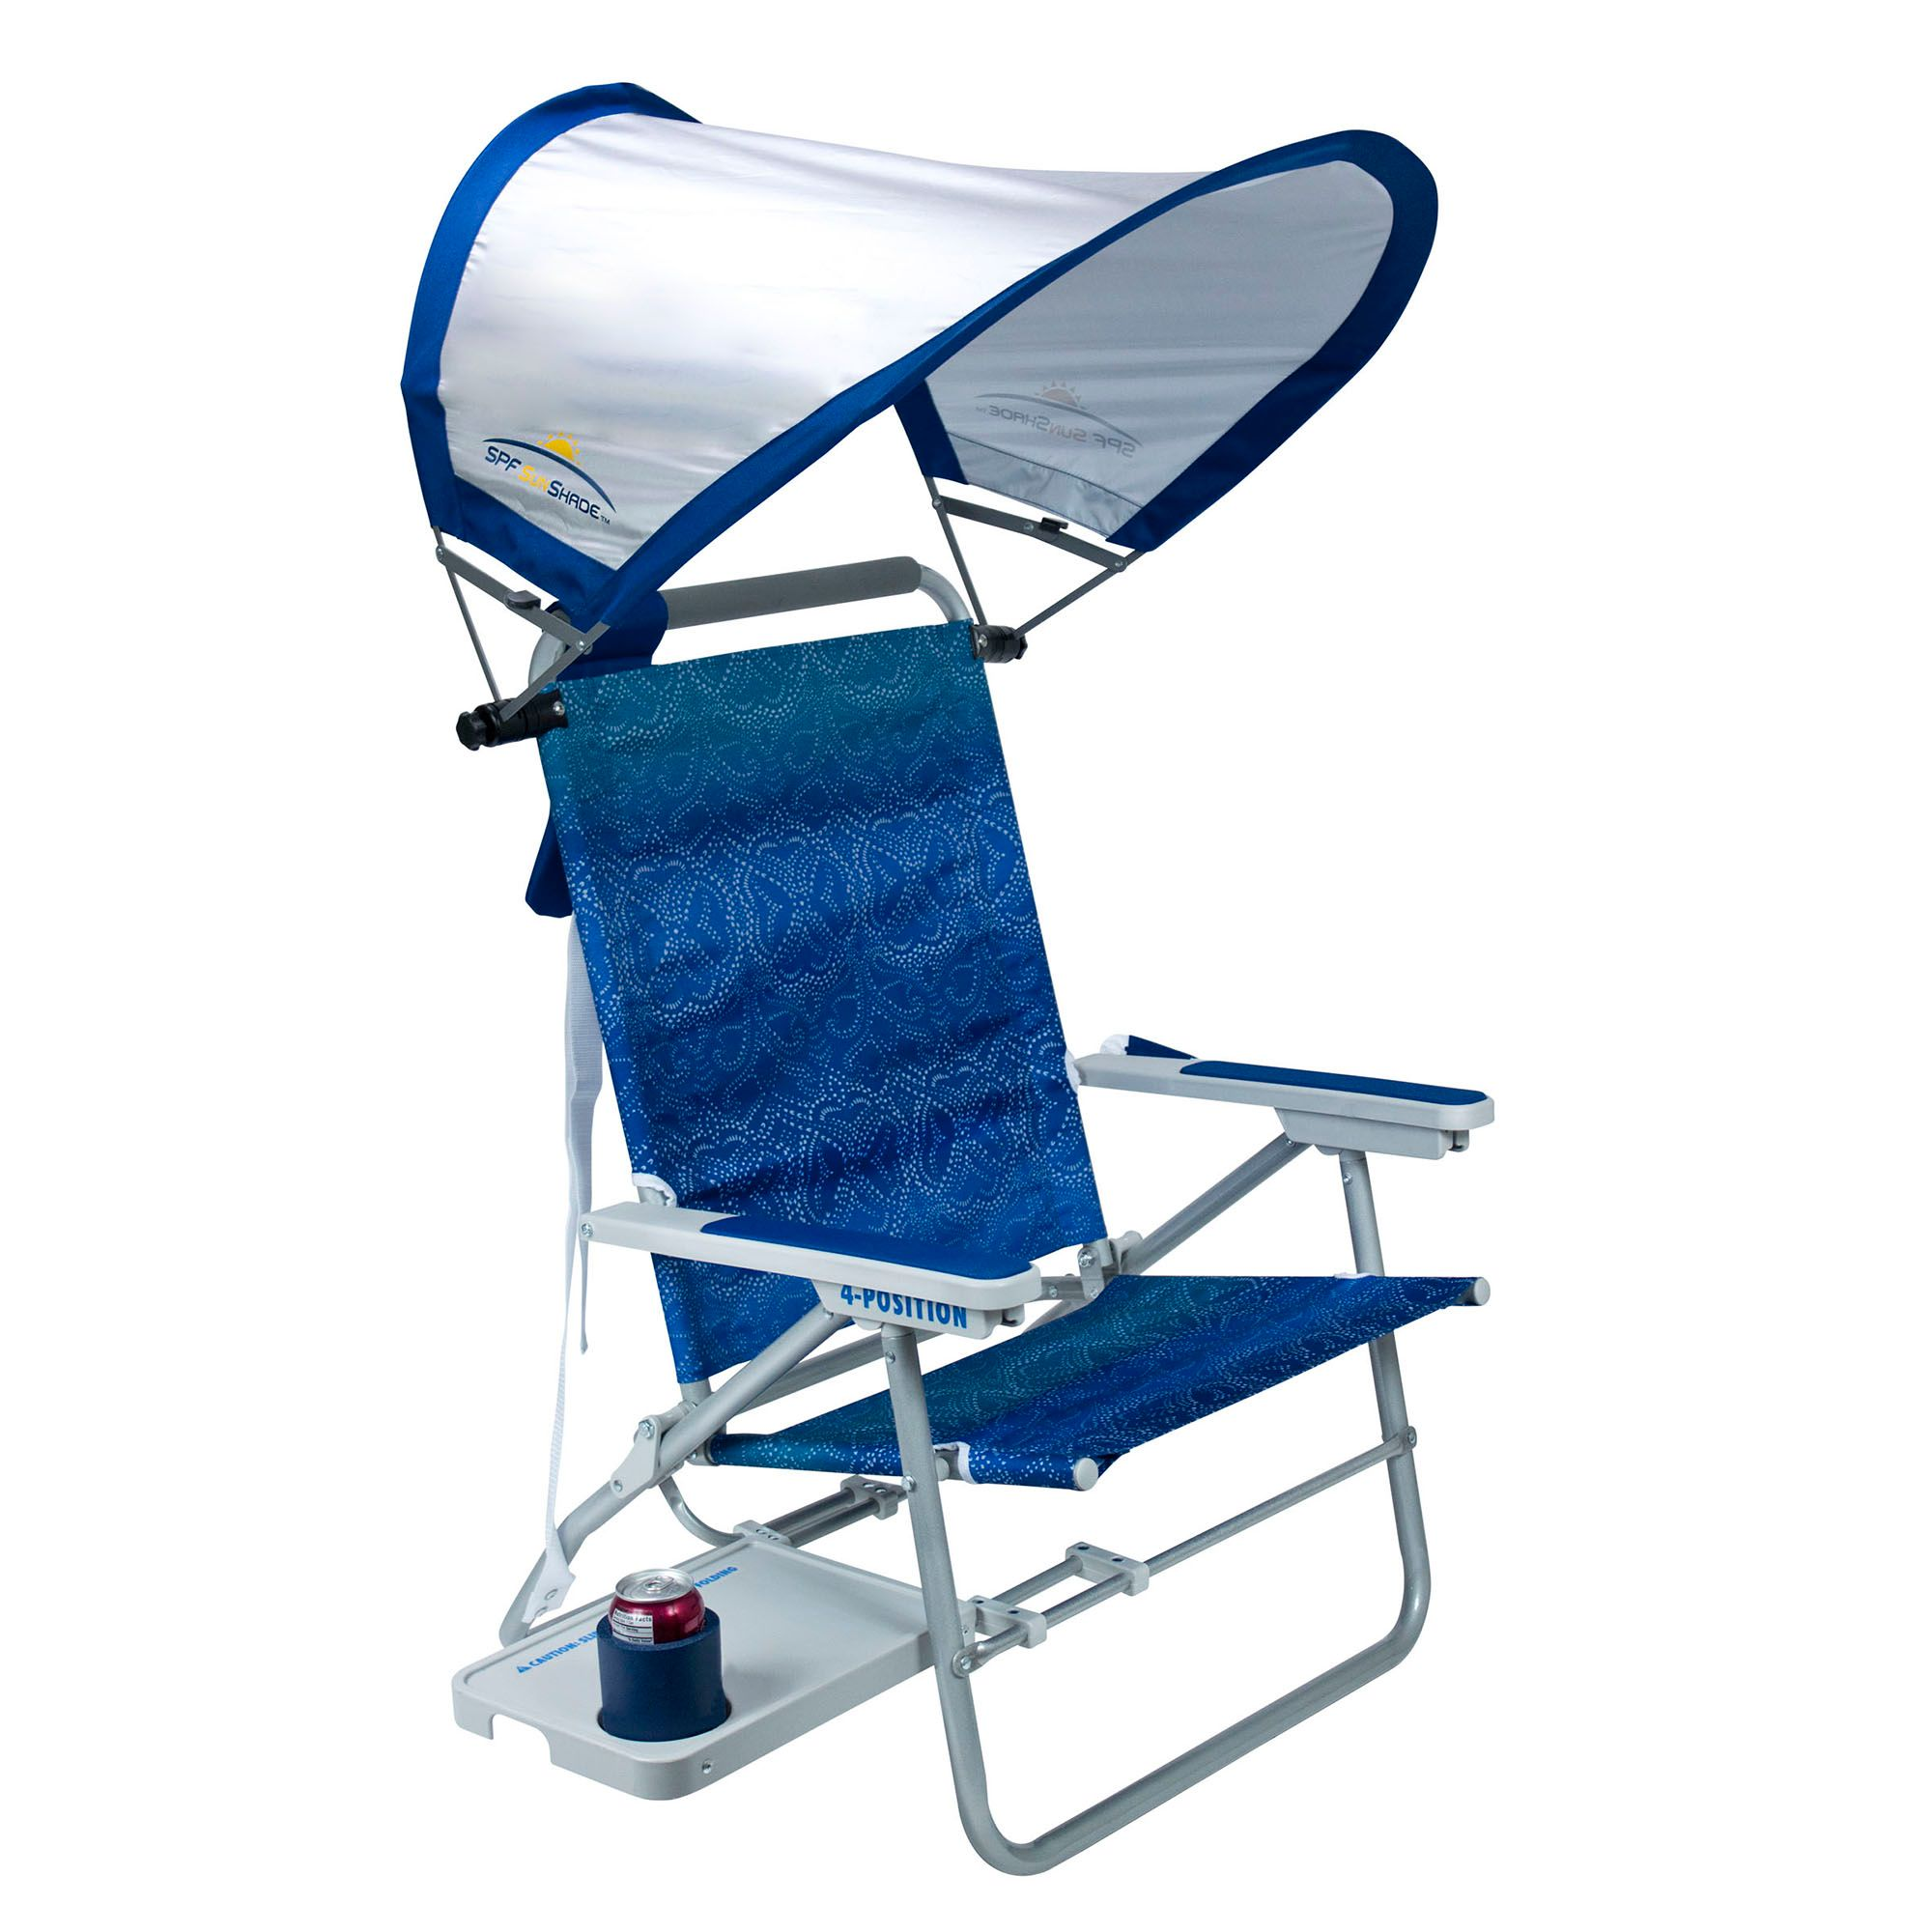 Beach & Pool Chairs Beach Umbrellas Bed Bath & Beyond